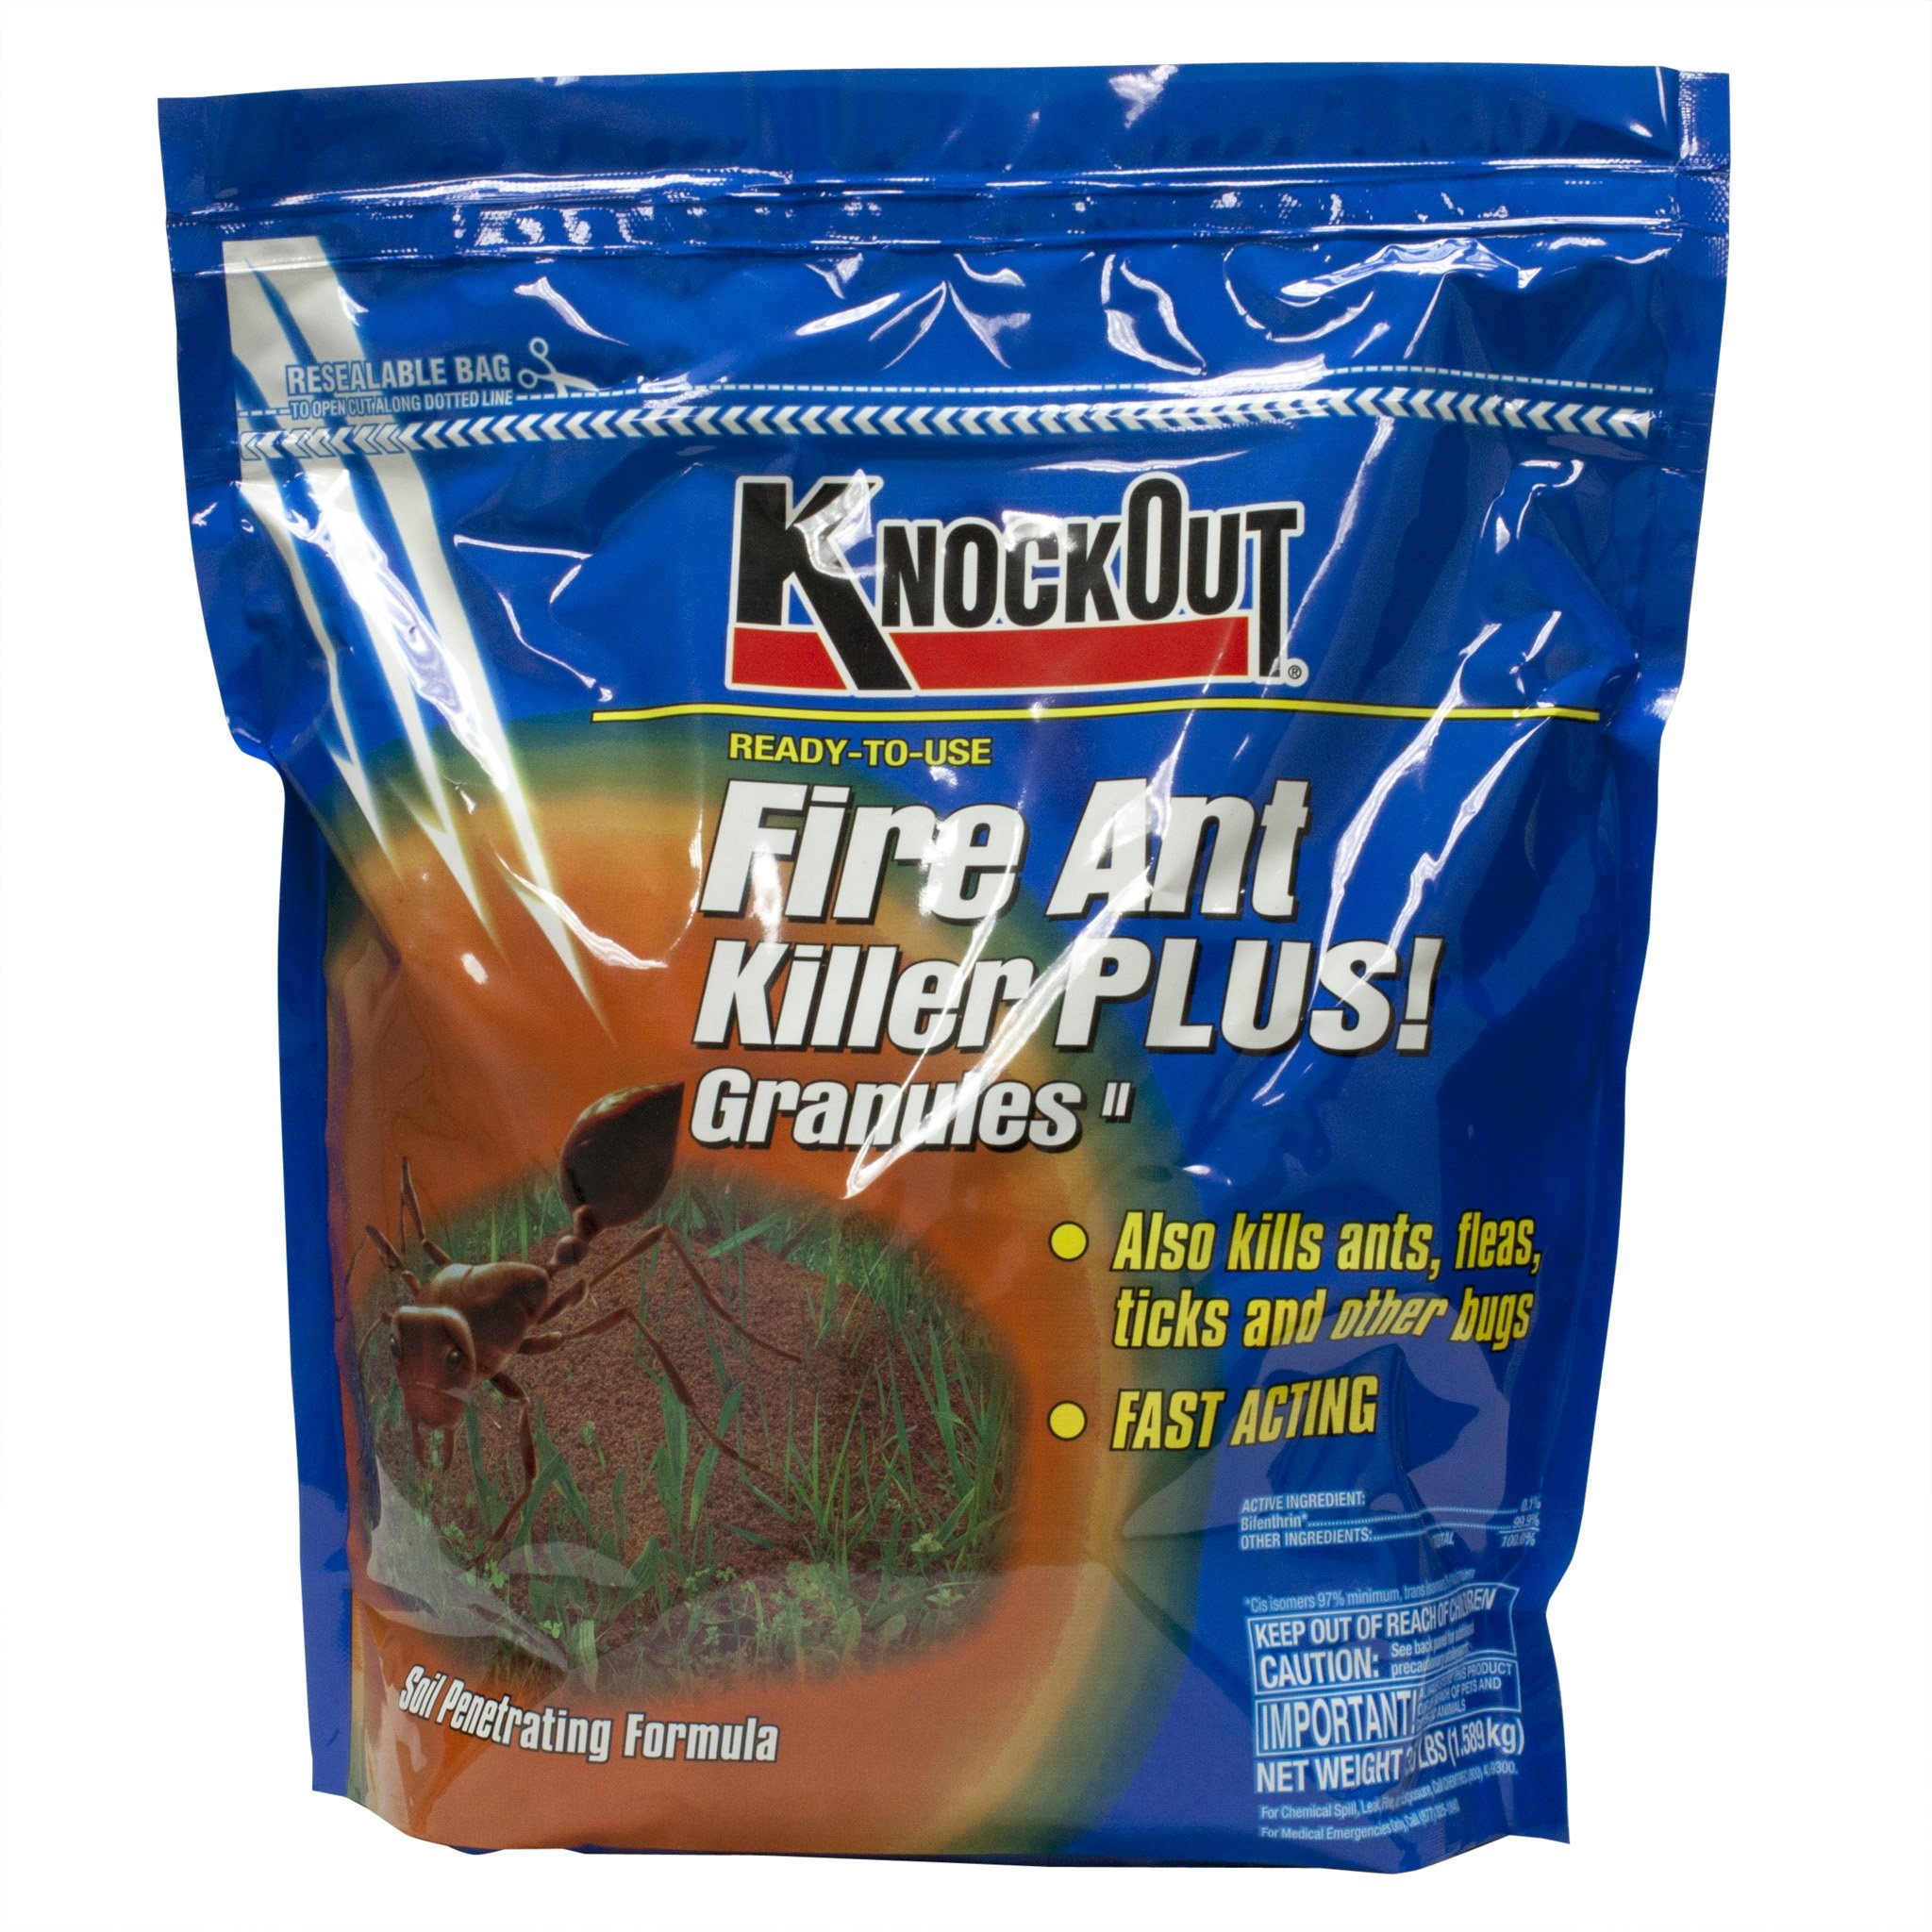 Knock Out 342048.0 Fire Ant Killer, 3.5 lb by Knock Out